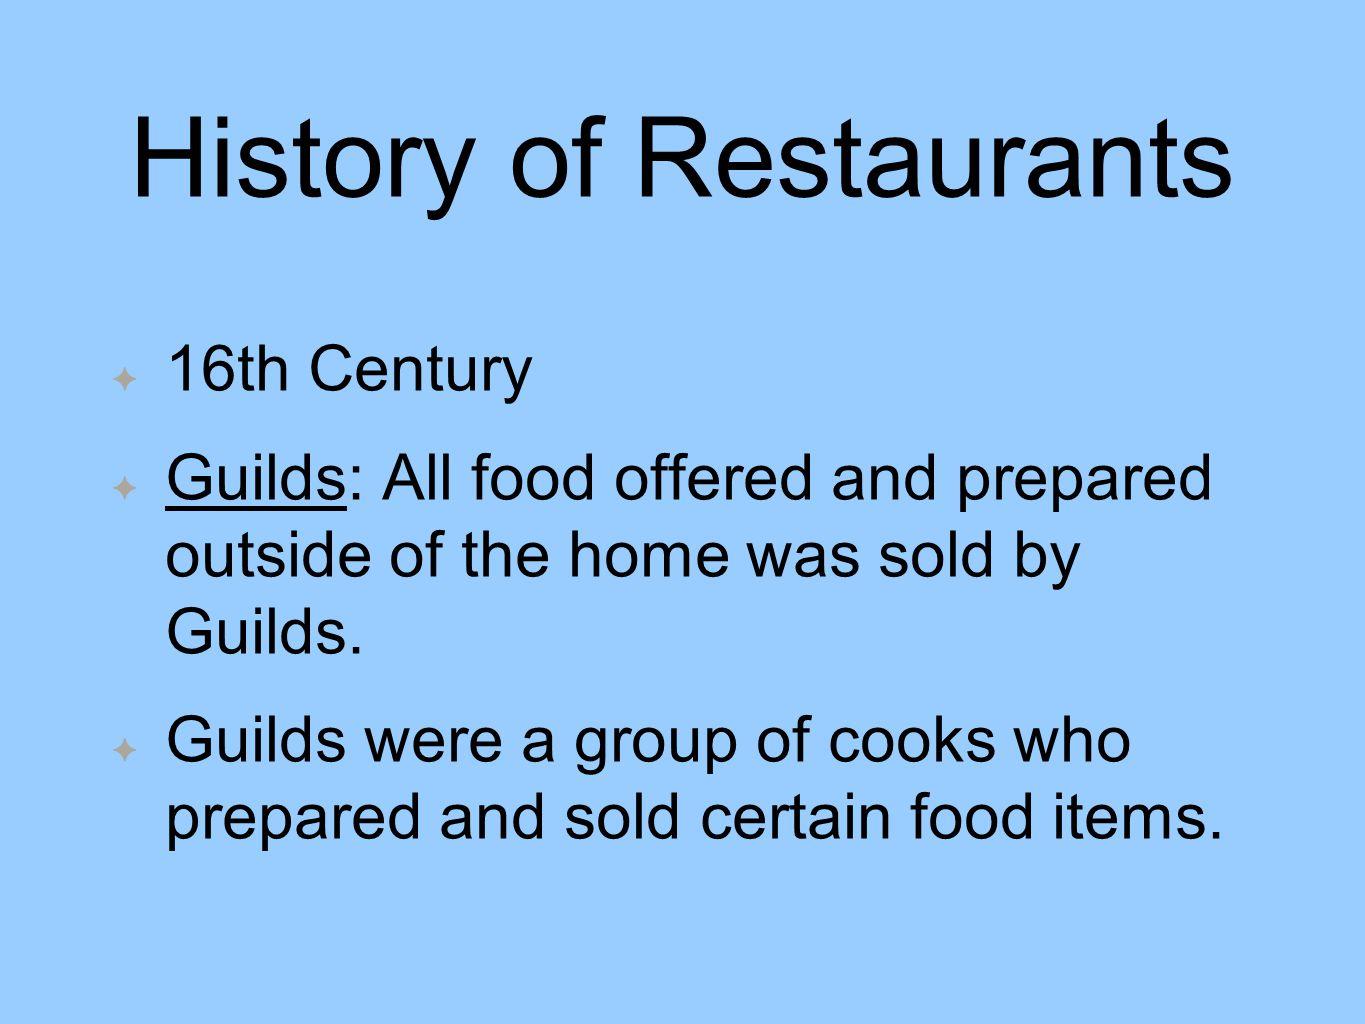 History of Restaurants 16th Century Guilds: All food offered and prepared outside of the home was sold by Guilds.